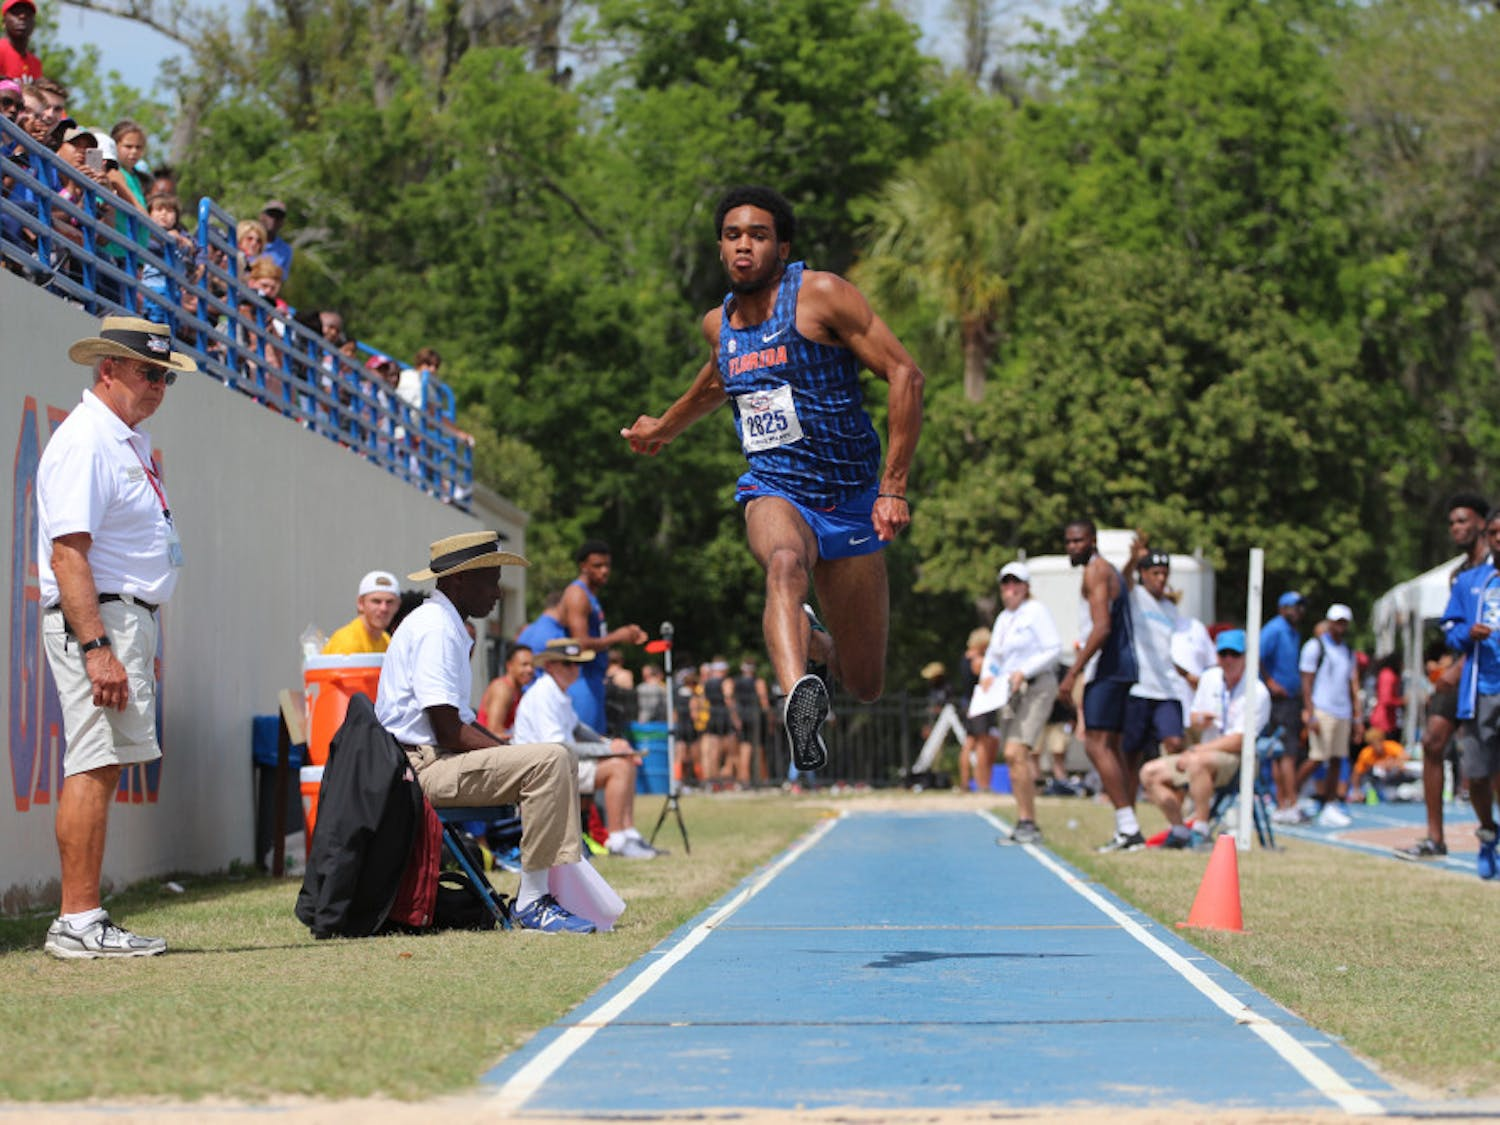 Senior jumper KeAndre Bates took first place in the triple jump at the NCAA East Preliminaries. Bates qualified for the NCAA Outdoor Championships in Eugene, Oregon, for both the triple jump and long jump.